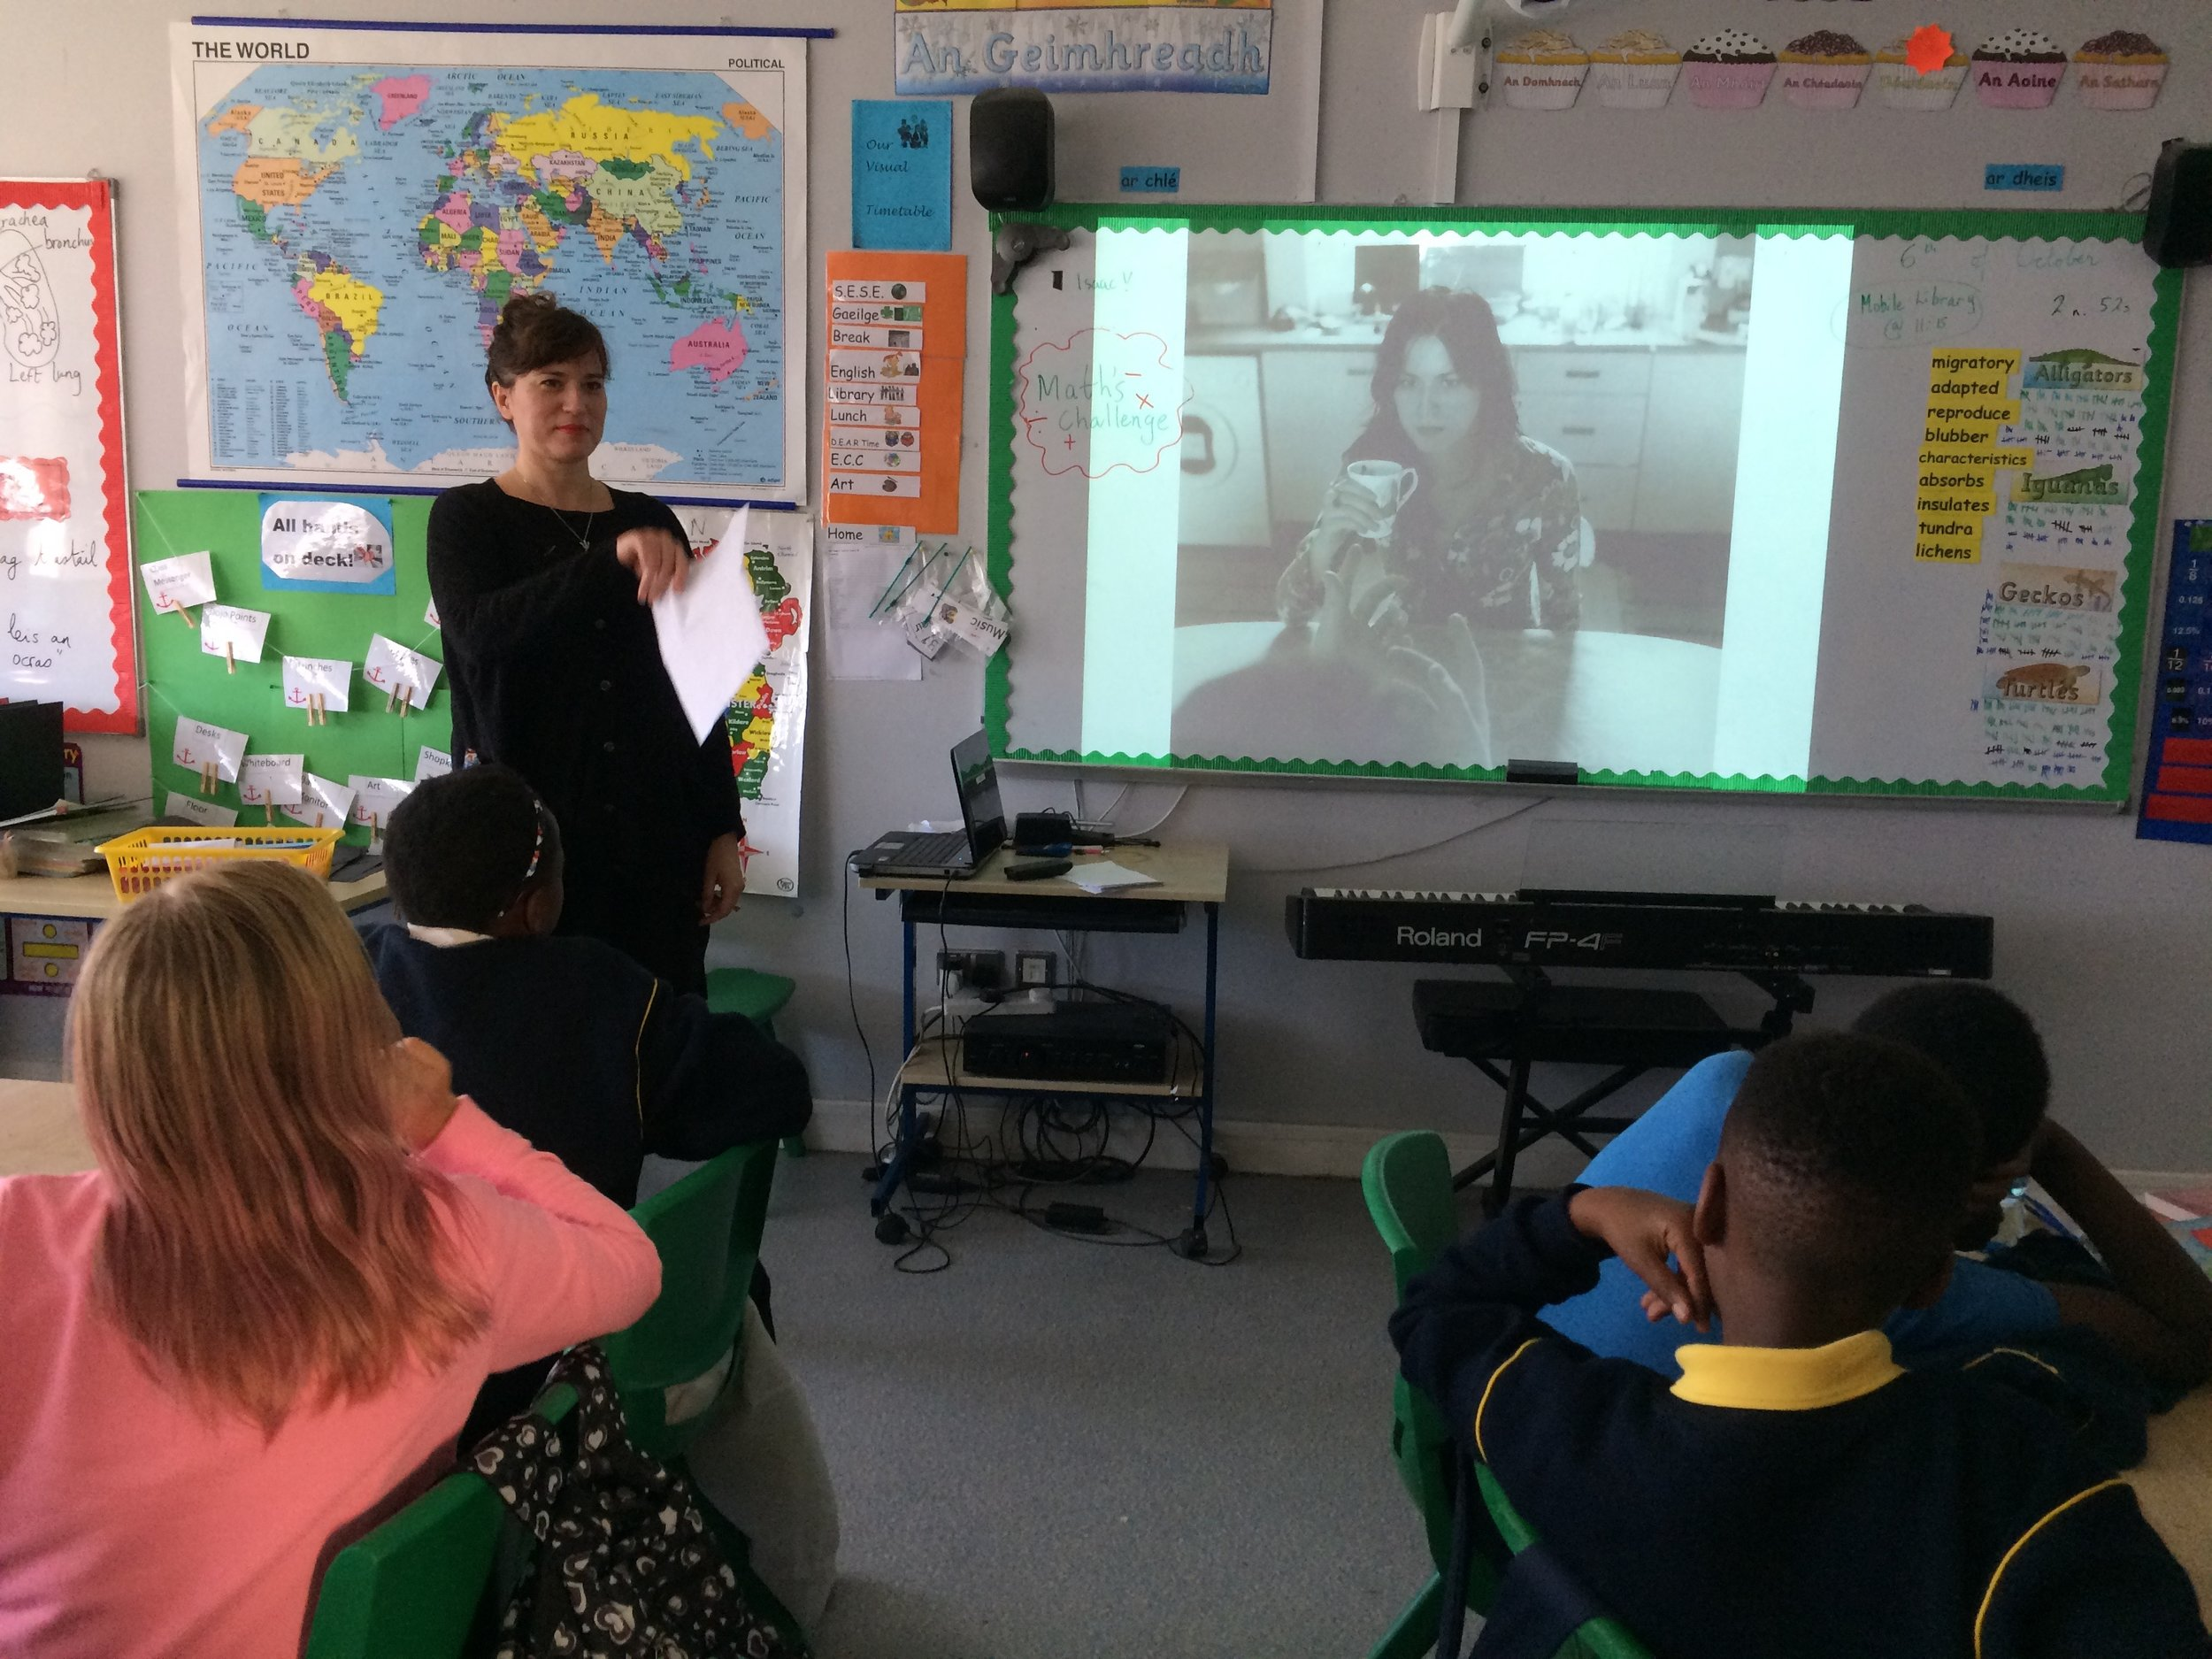 Dragana showed them an image of her work 'A portrait of a wife' and asked them some questions to prompt a reading of the image